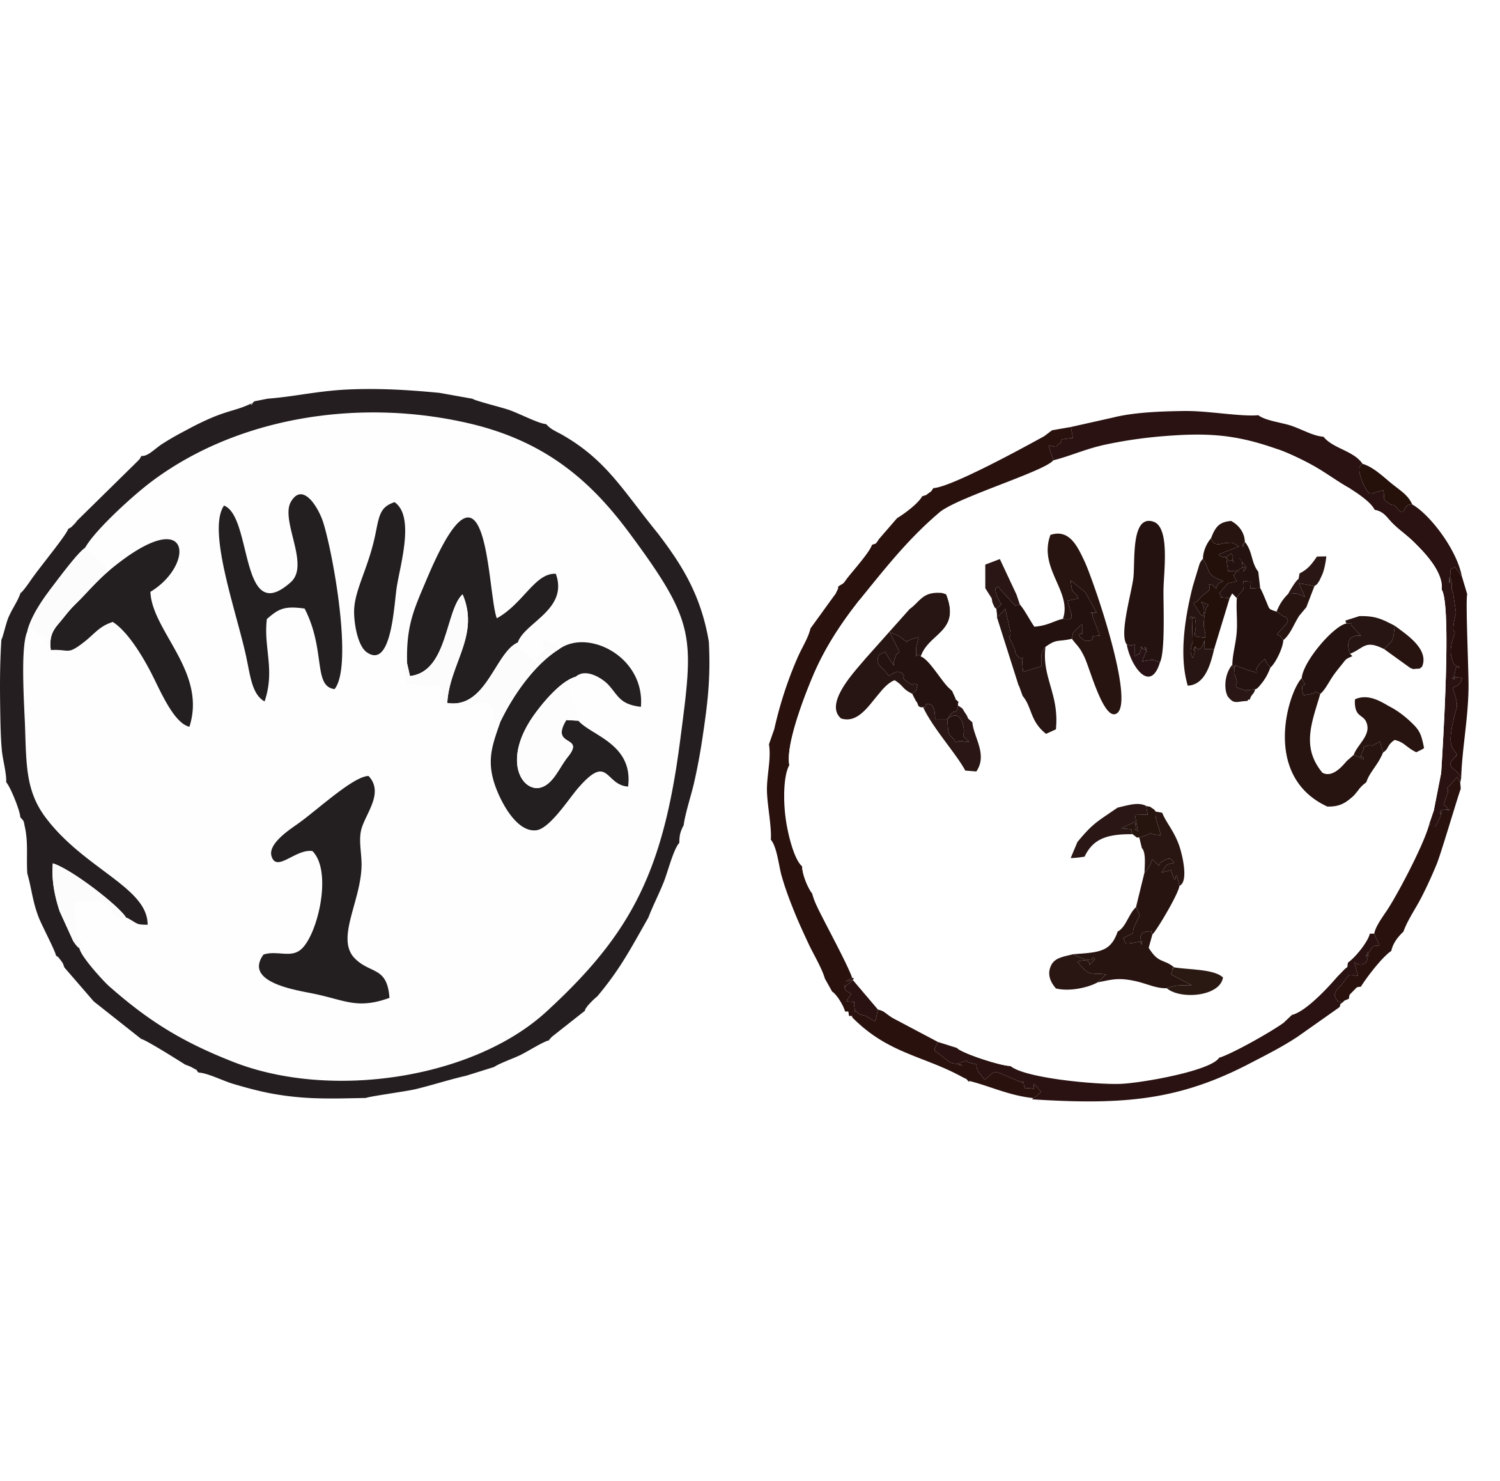 picture relating to Thing 1 and Thing 2 Logo Printable called Point 1 And Factor 2 Pictures Cost-free down load easiest Matter 1 And